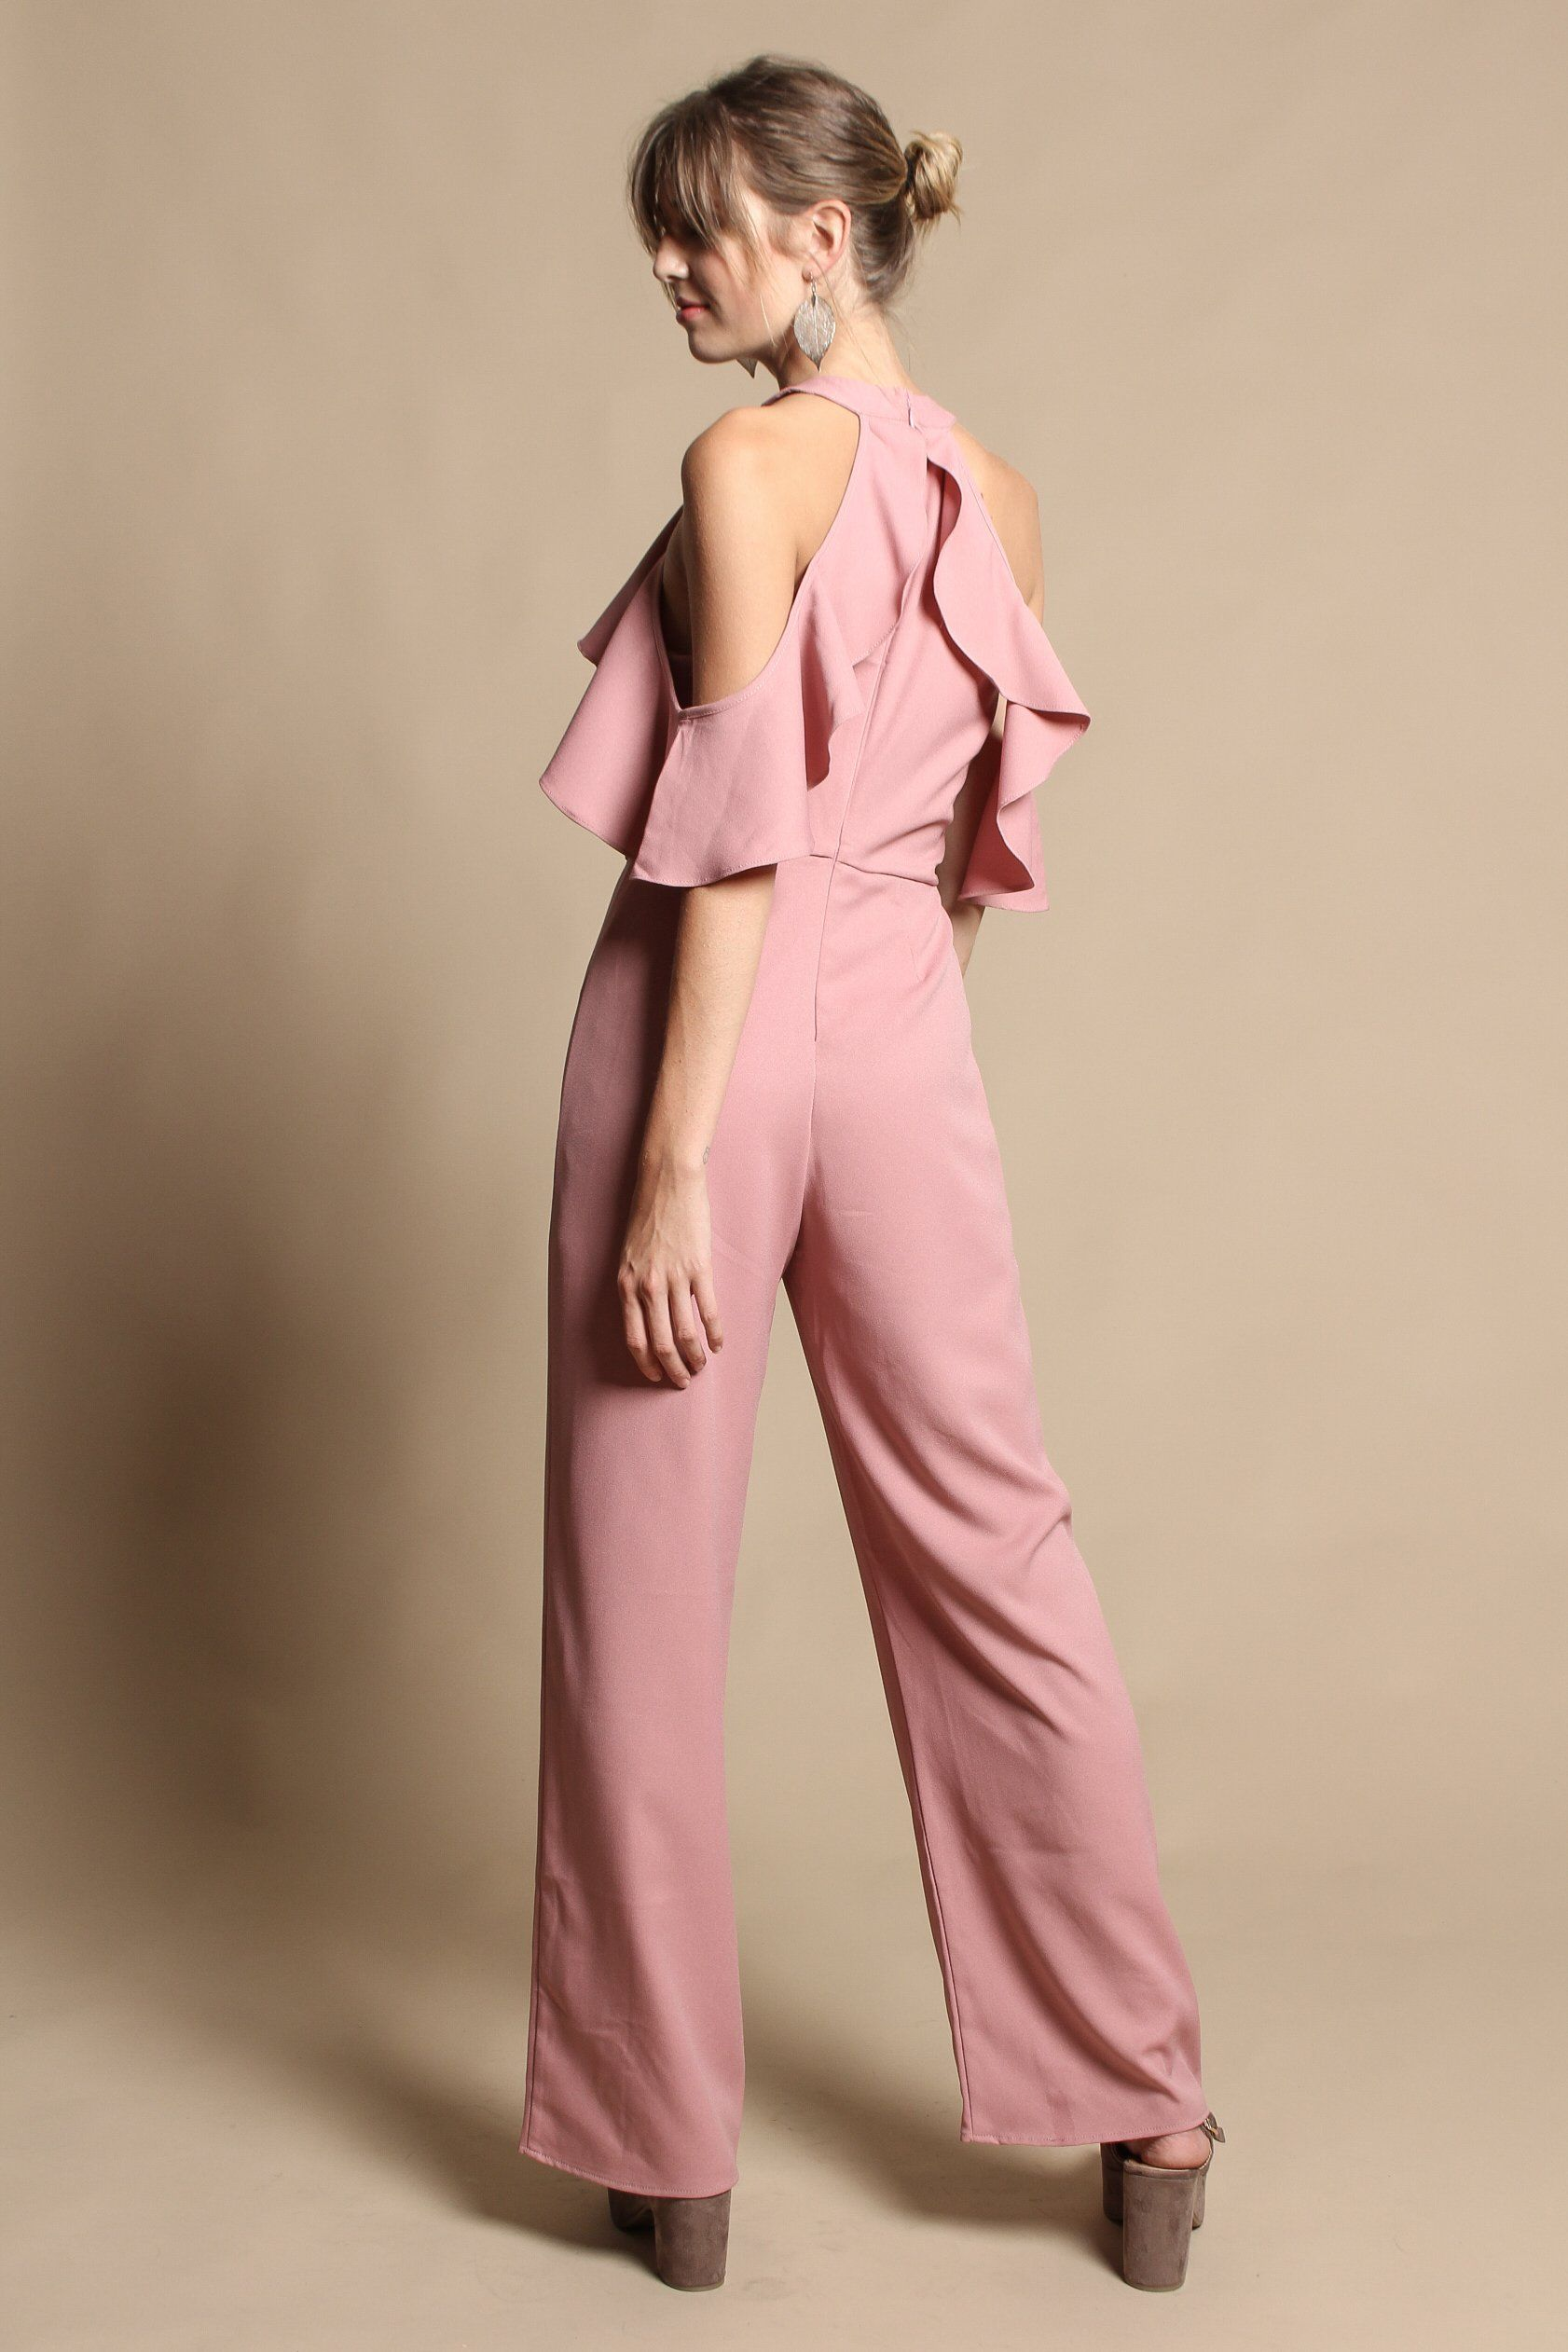 Rego Ruffled Sleeve Jumpsuit